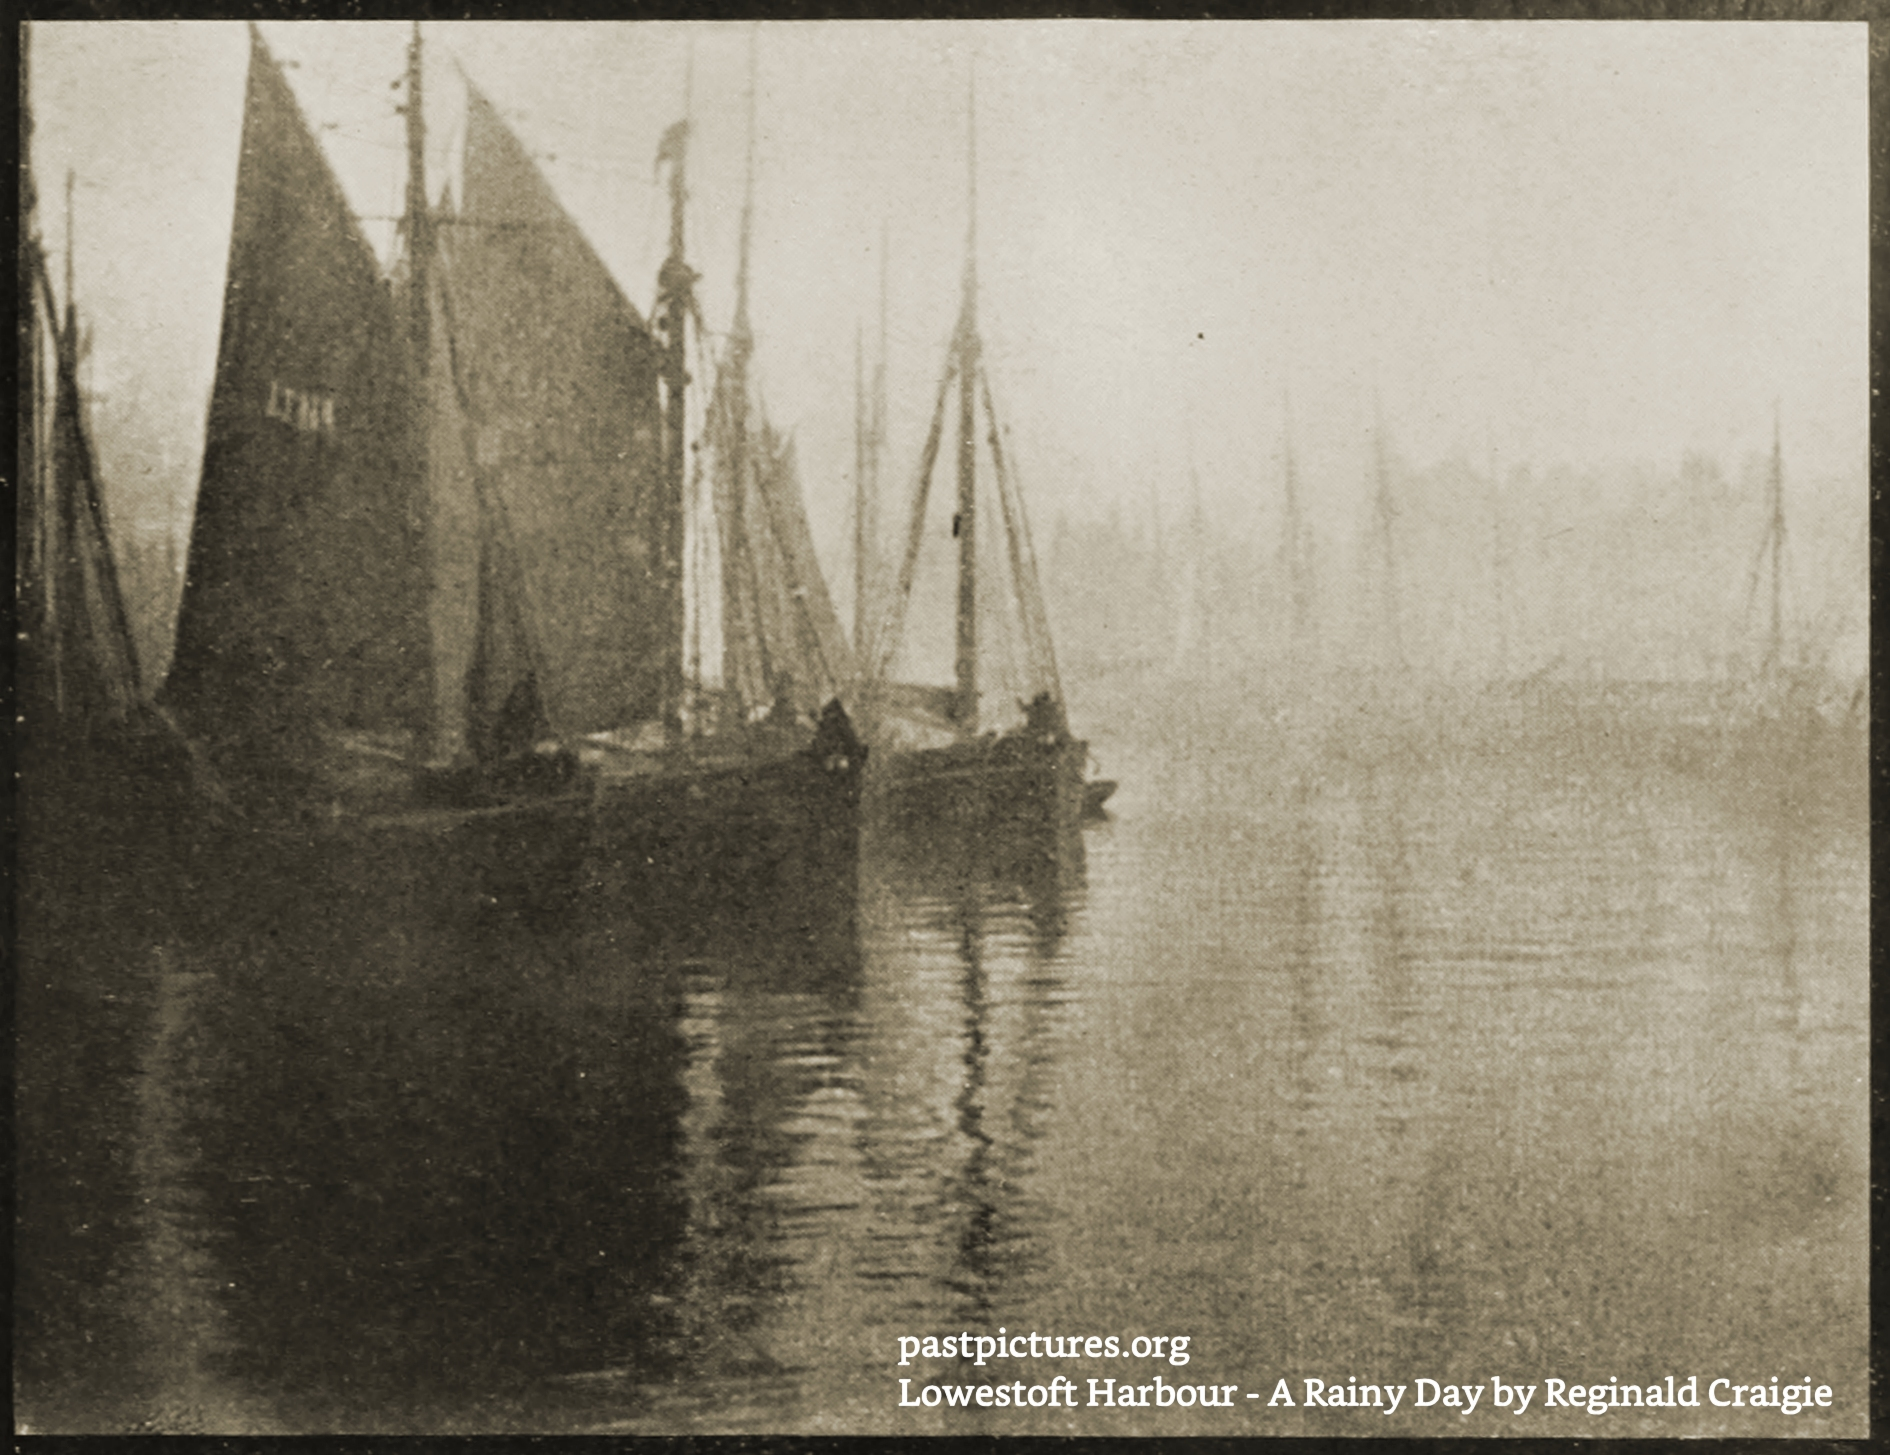 Lowestoft Harbour, England – A Rainy Day by Reginald Craigie about 1908